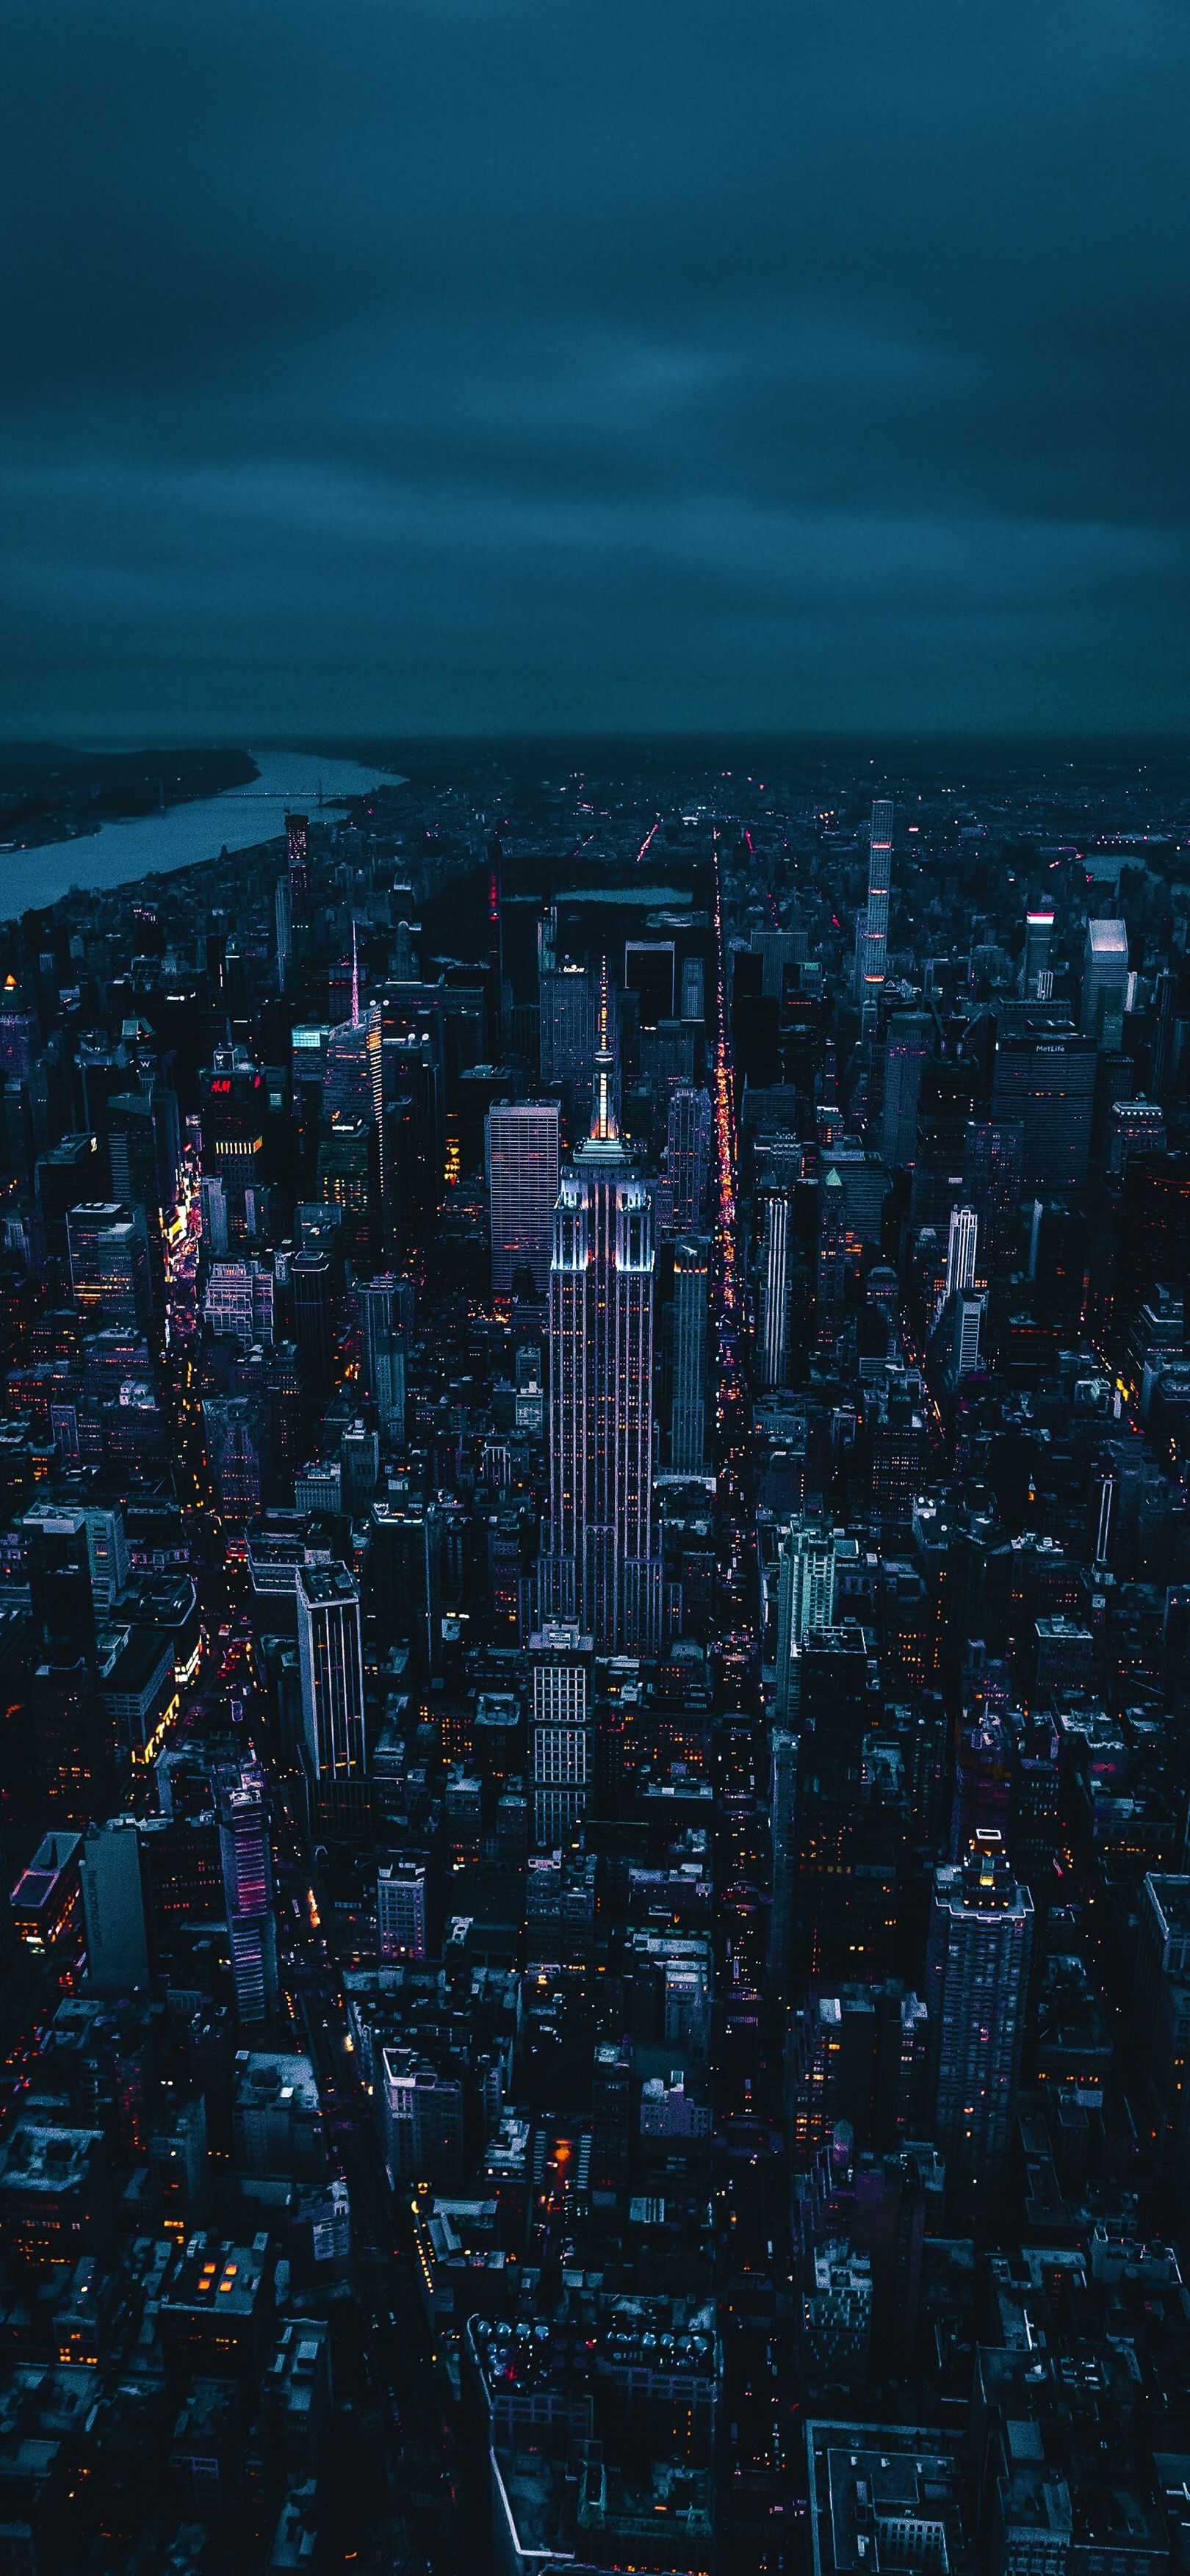 Pin By Fatiimah Fatiimah On Wallpapers City Wallpaper New York Iphone Wallpaper New York Wallpaper